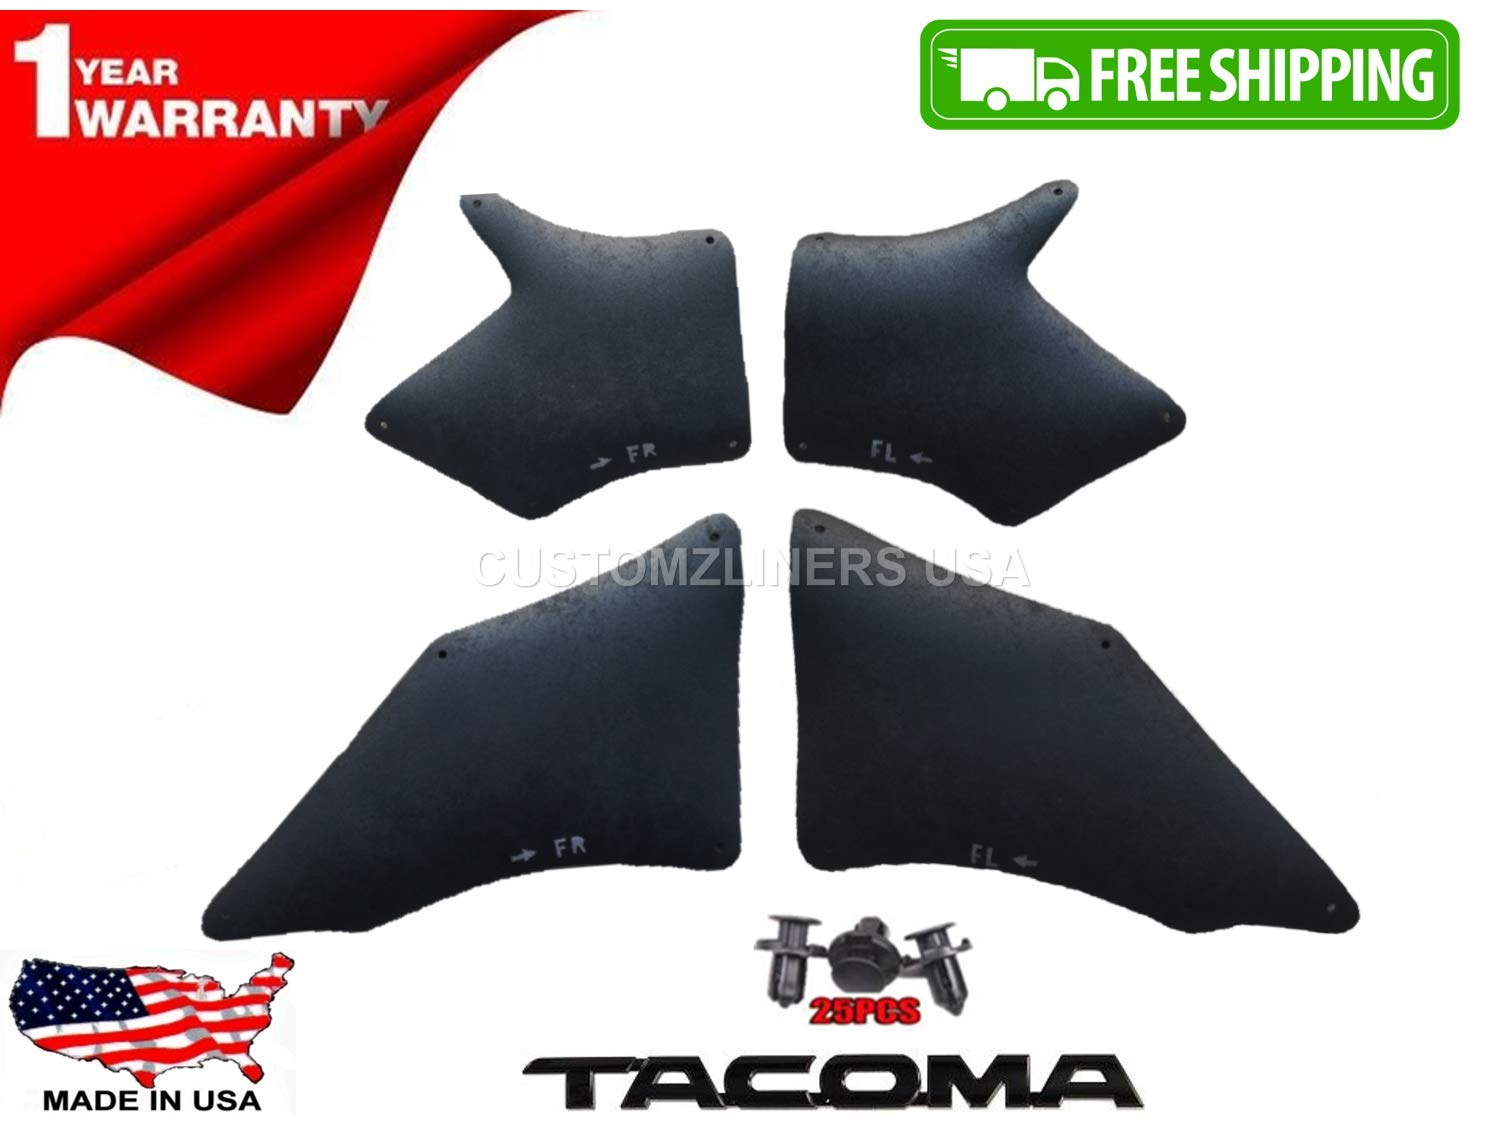 Splash Shield,Splash Guard, Skirt, Apron, Flaps, Fender Seal and Fender Liners for Toyota Tacoma 2005-2015 Retainer Clips